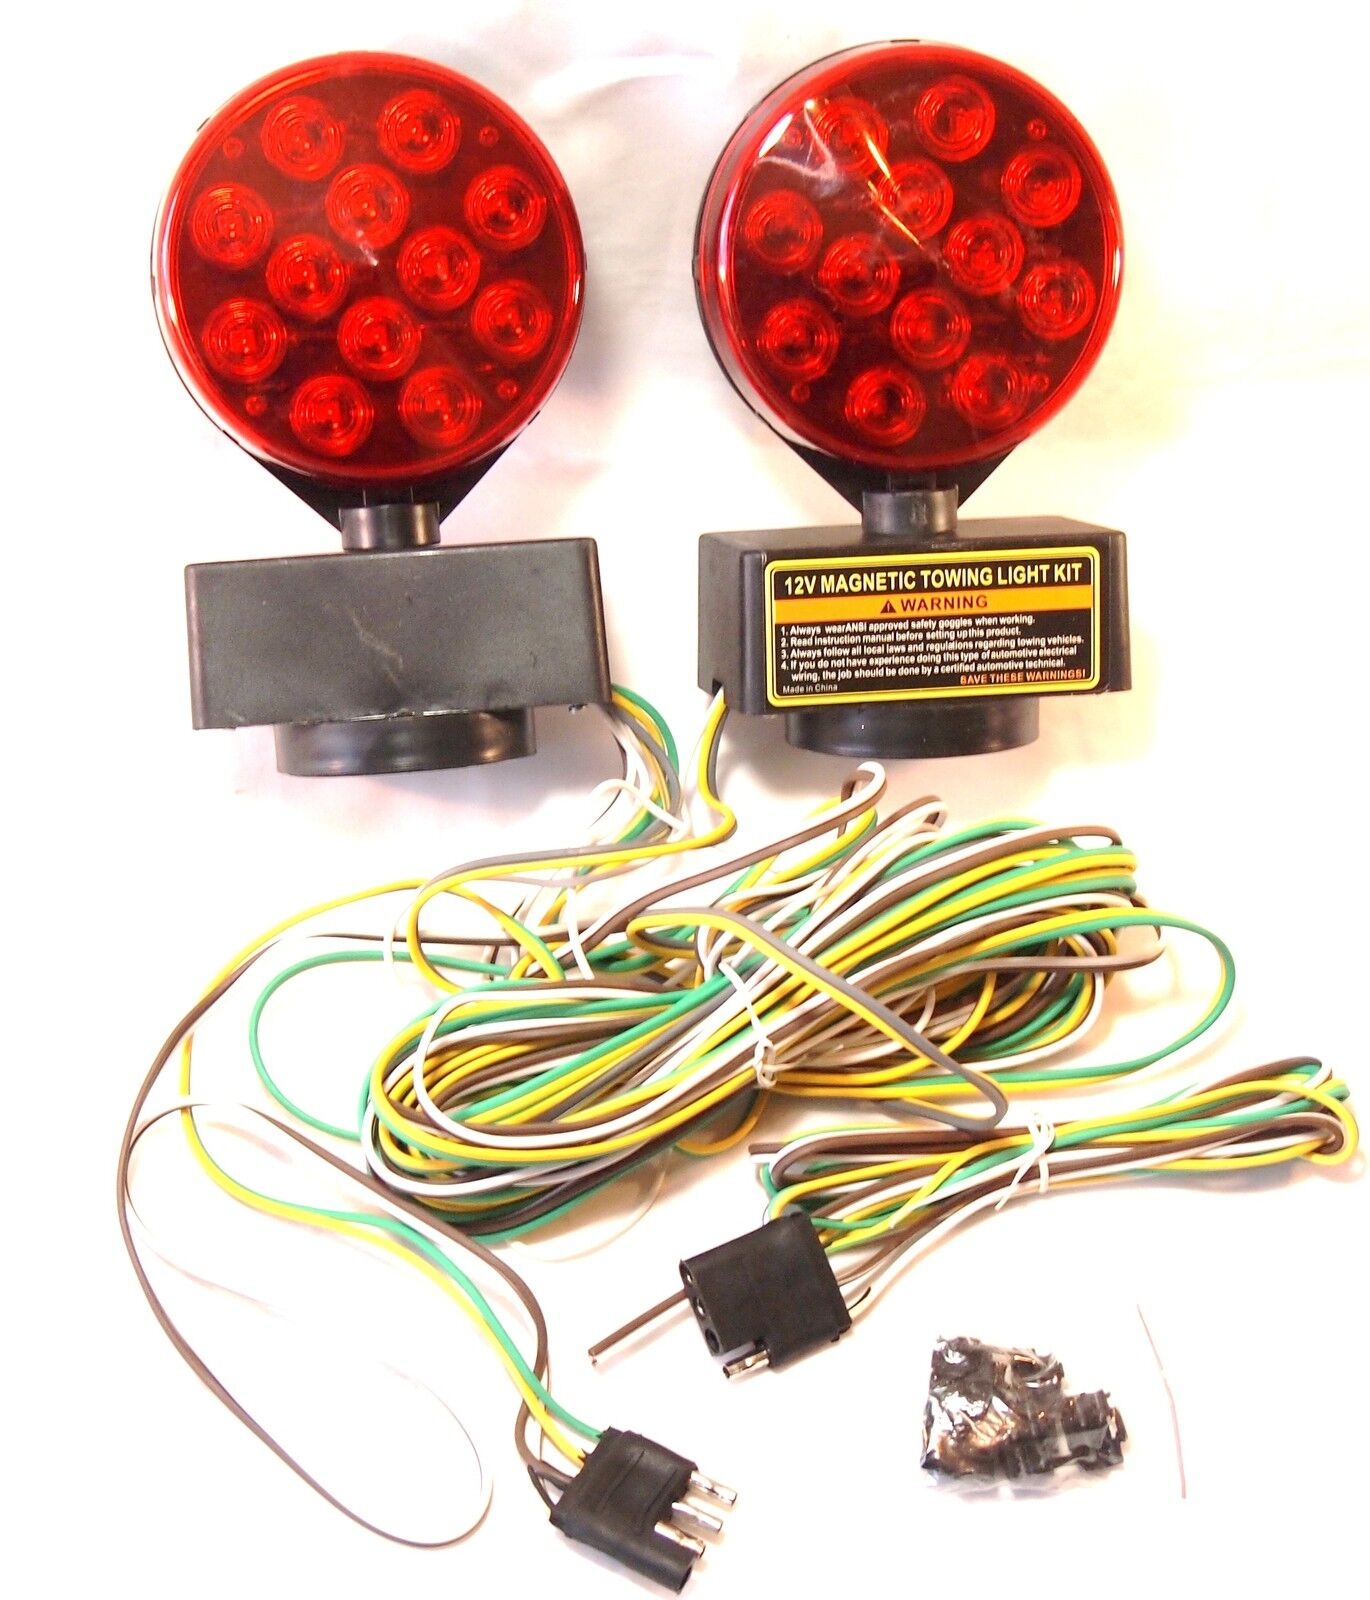 Wrecker Parts Magnetic Wiring Harness Diagram Detailed Trailer Lights 12v 24 Led Towing Light Kit Ebay Norton Secured Powered By